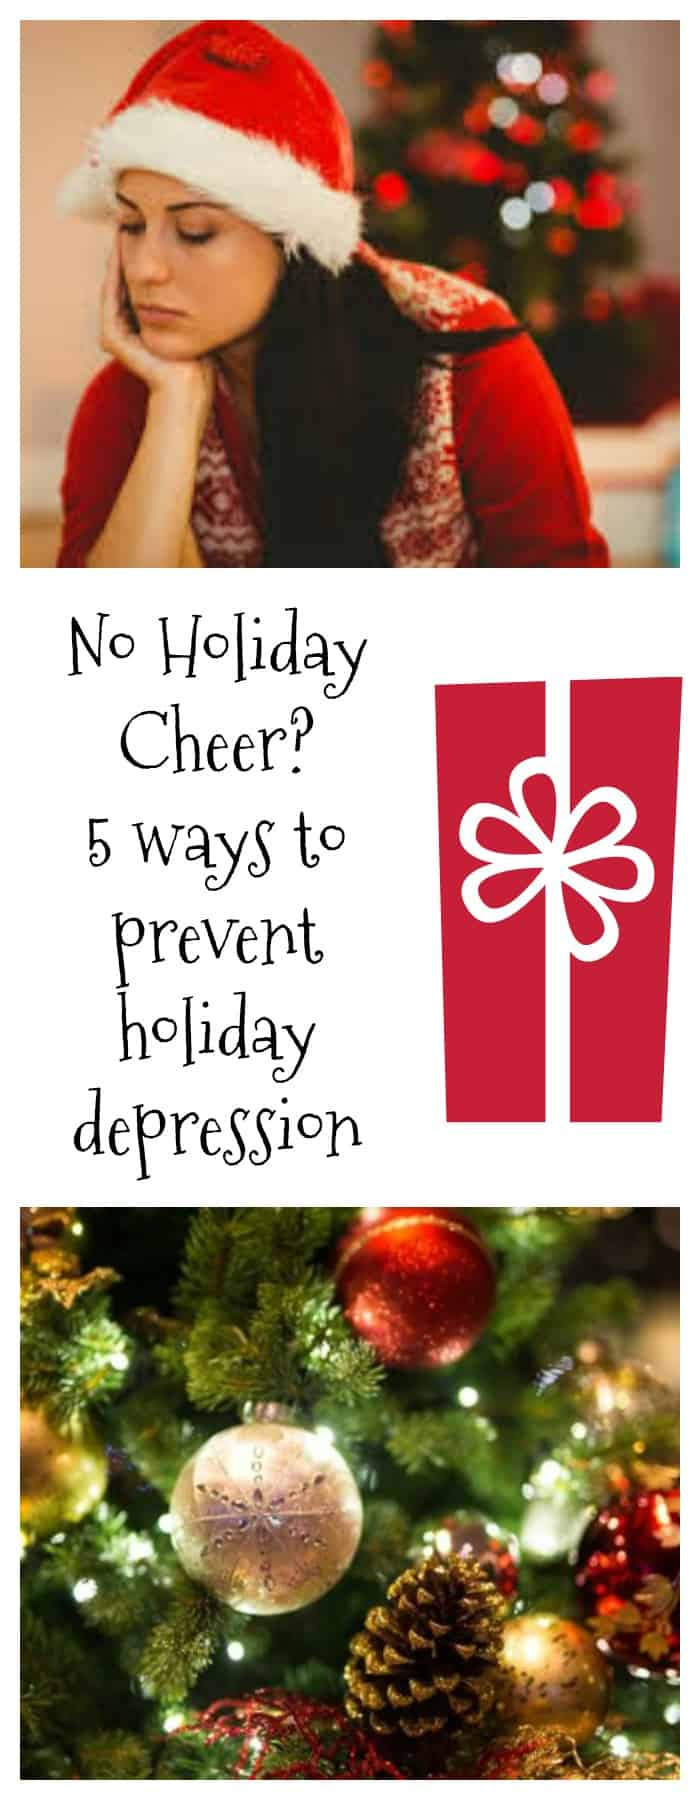 Holidays--No Holiday Cheer? 5 Ways to Prevent Holiday Depression--The Organized Mom